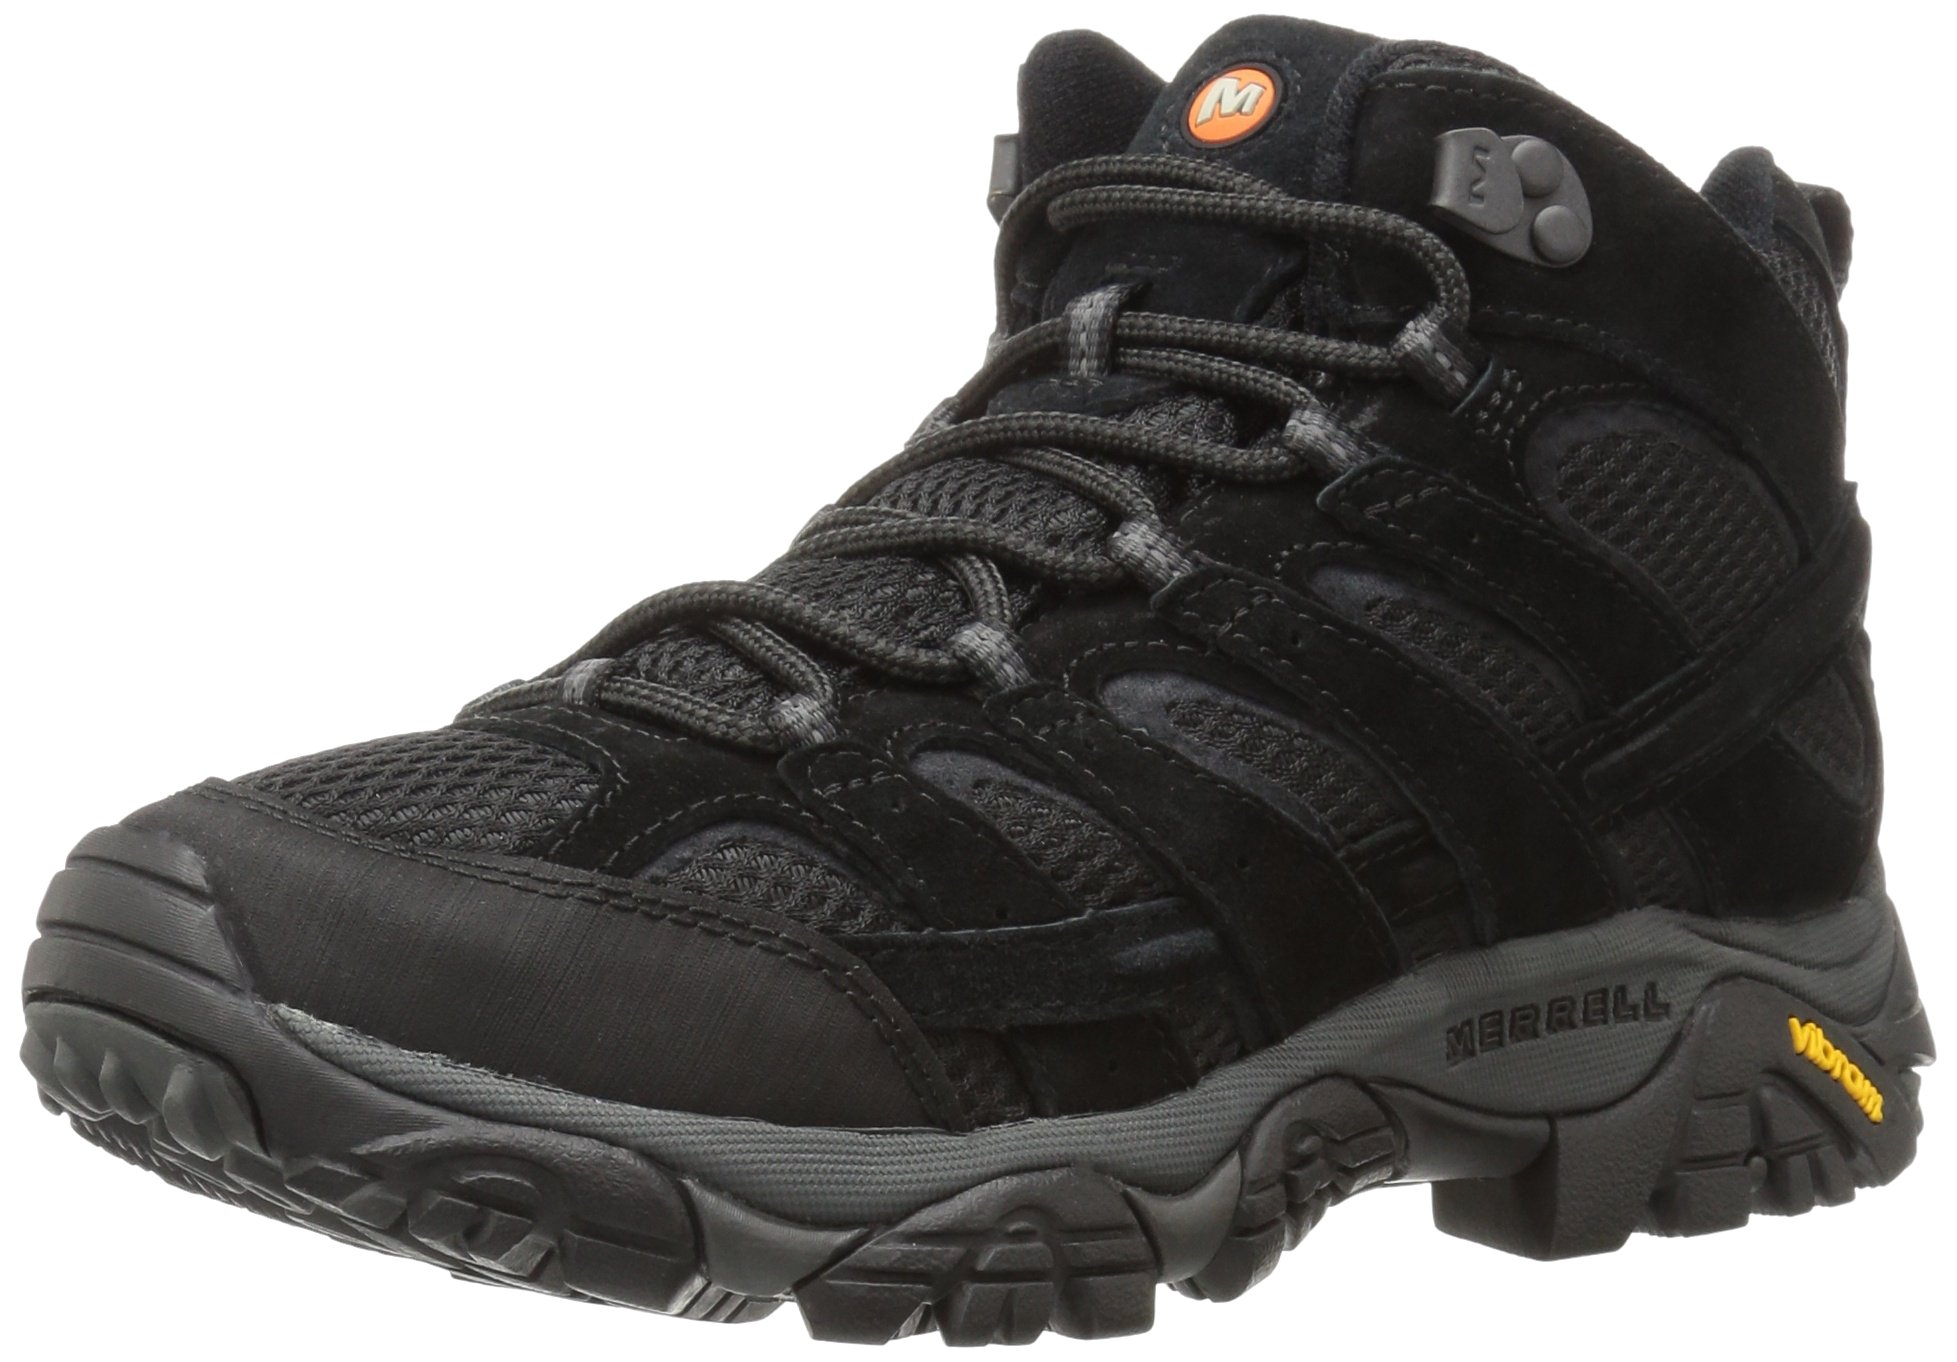 Merrell Men's Moab 2 Vent Mid Hiking Boot, Black Night, 13 M US by Merrell